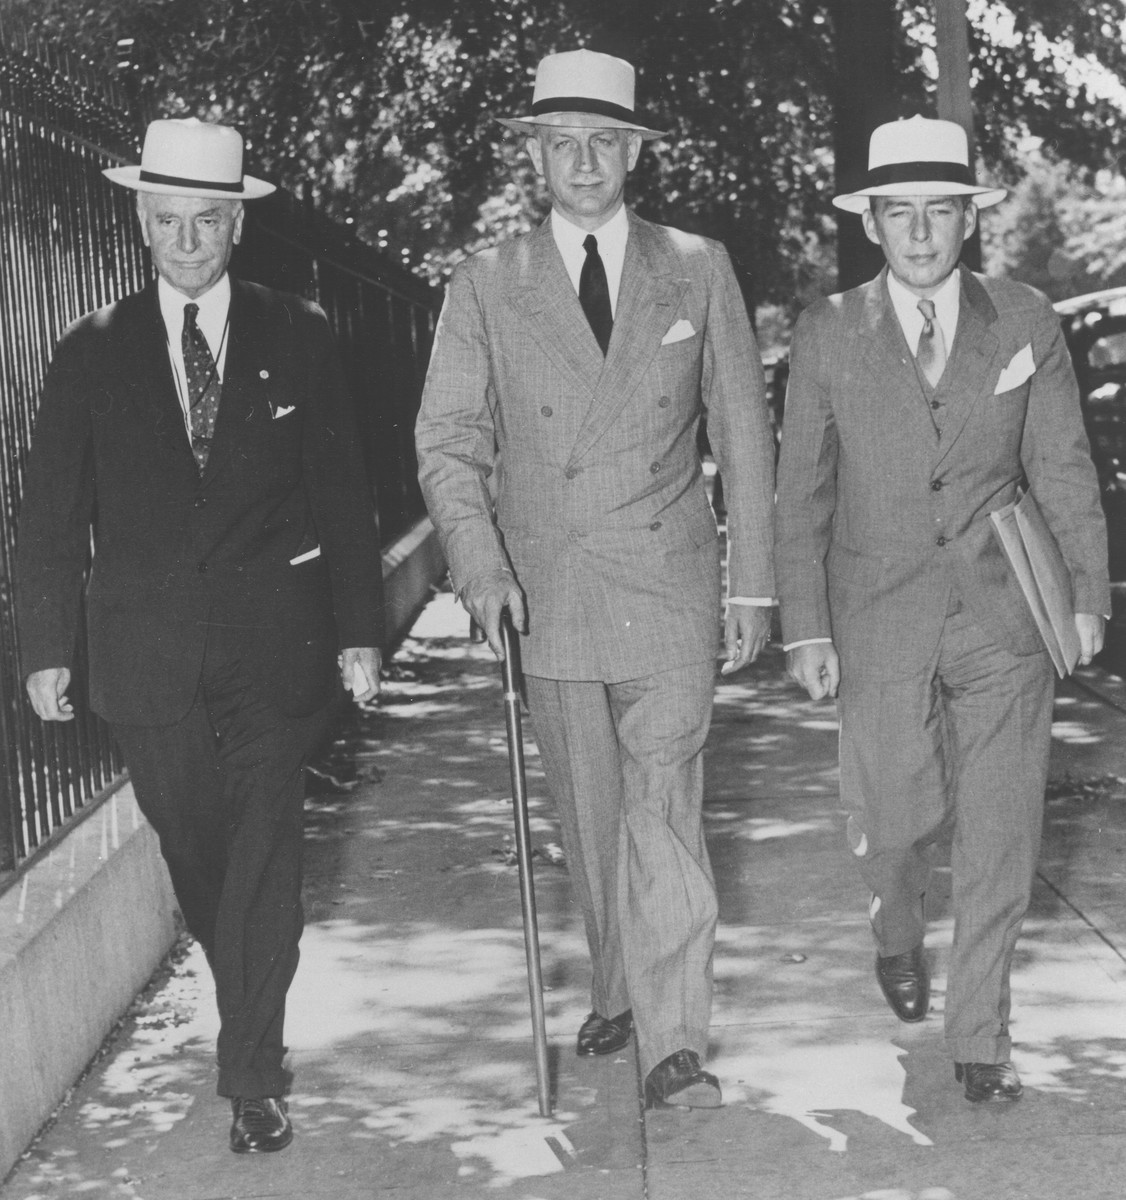 Secretary of State Cordell Hull (left), Under Secretary Sumner Welles, and Assistant Secretary Adolf Berle (right) arrive at the White House where they will witness Roosevelt's signing of the Neutrality Proclamation.